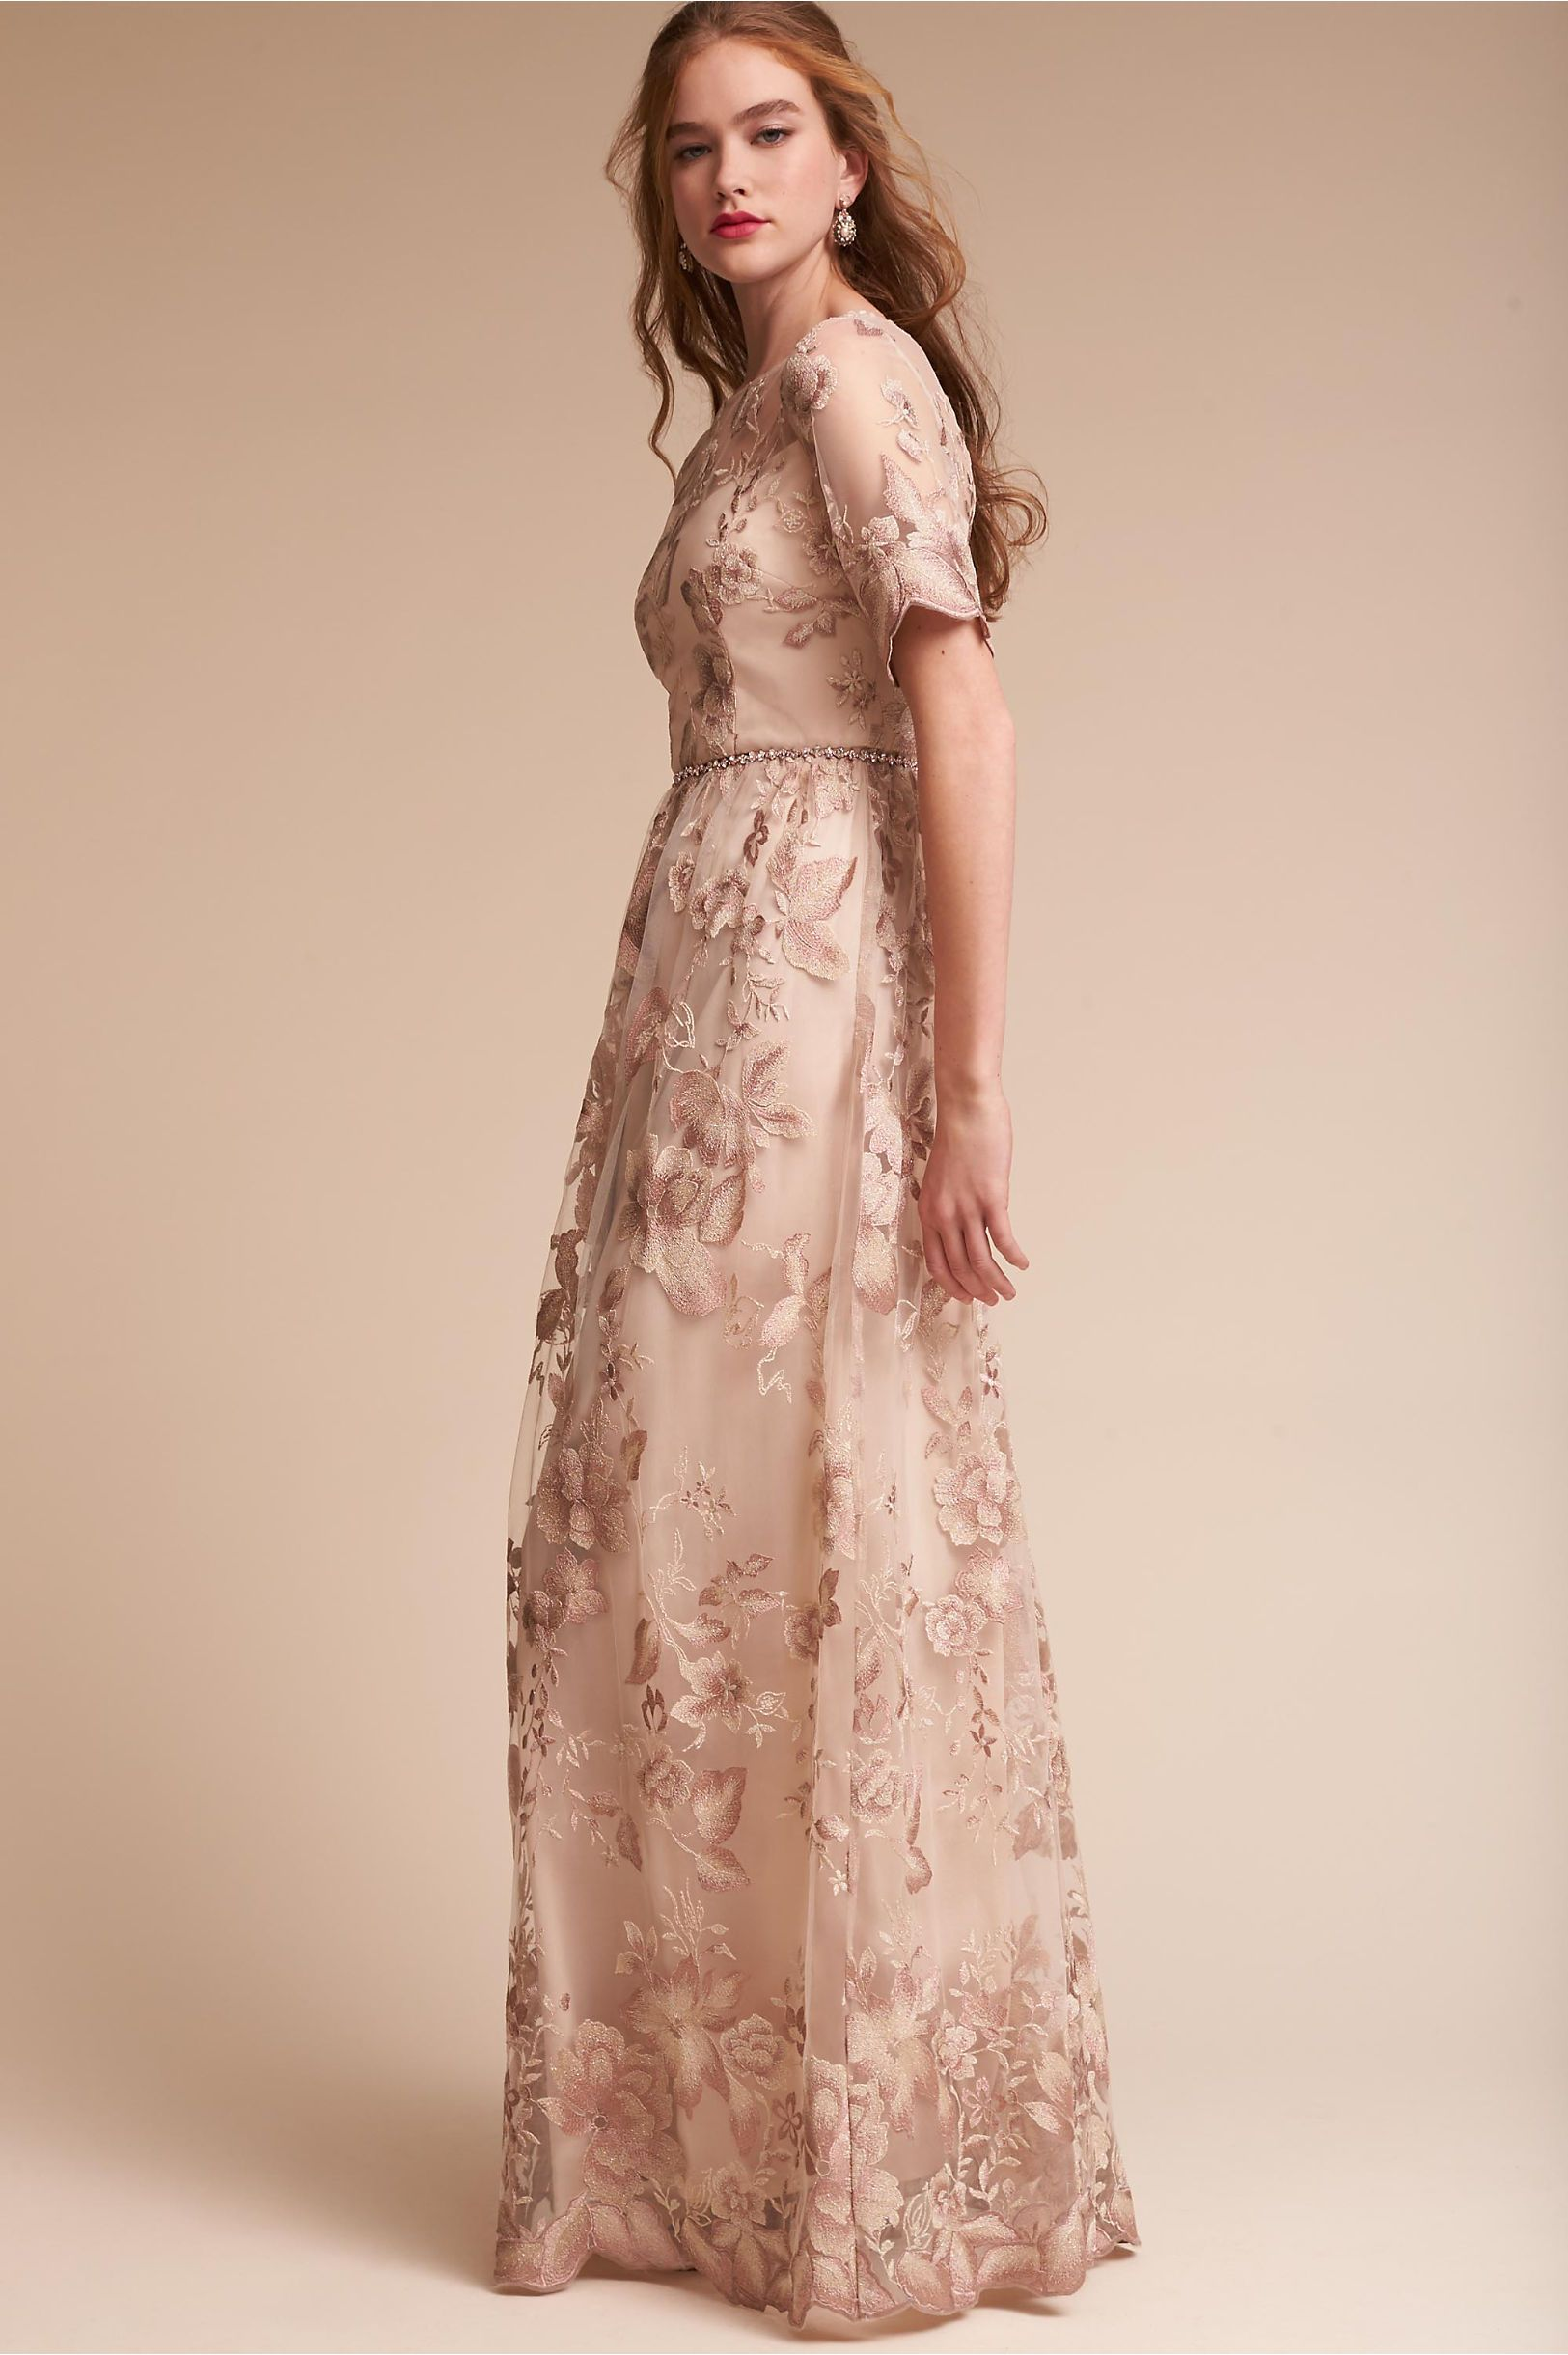 Pinterest flapper wedding dresses 1920s style and adrianna papell - Bhldn S Adrianna Papell Guilia Dress In Rose Quartz